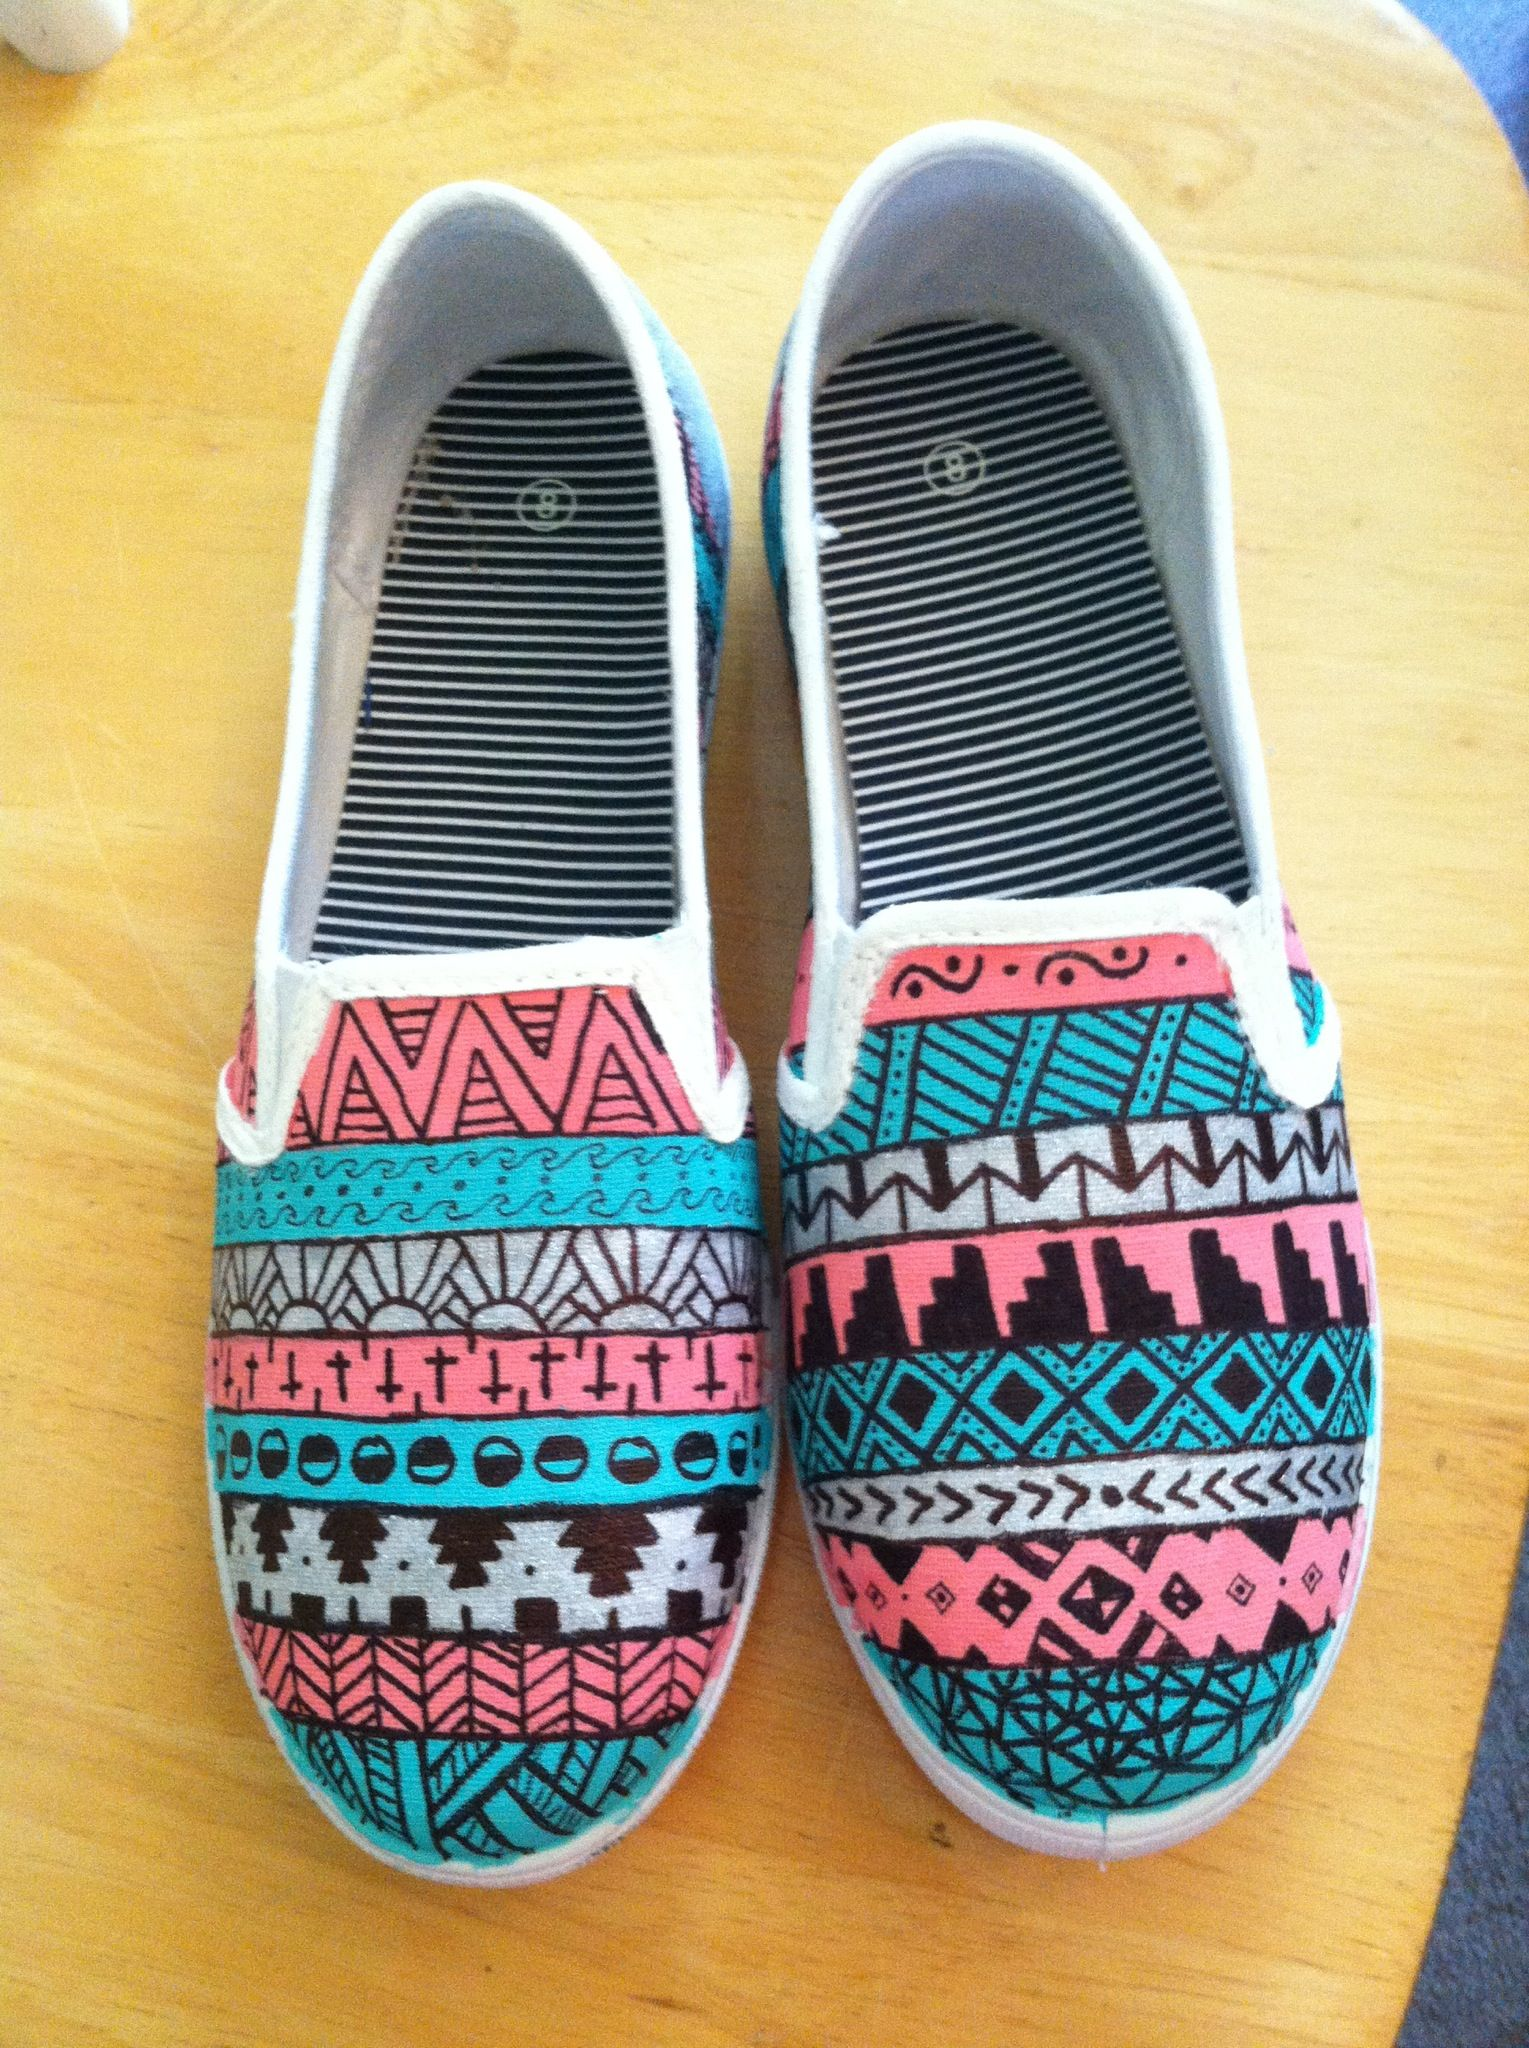 Hand painted shoes | Sharpie shoes, Upcycle shoes, Diy sneakers